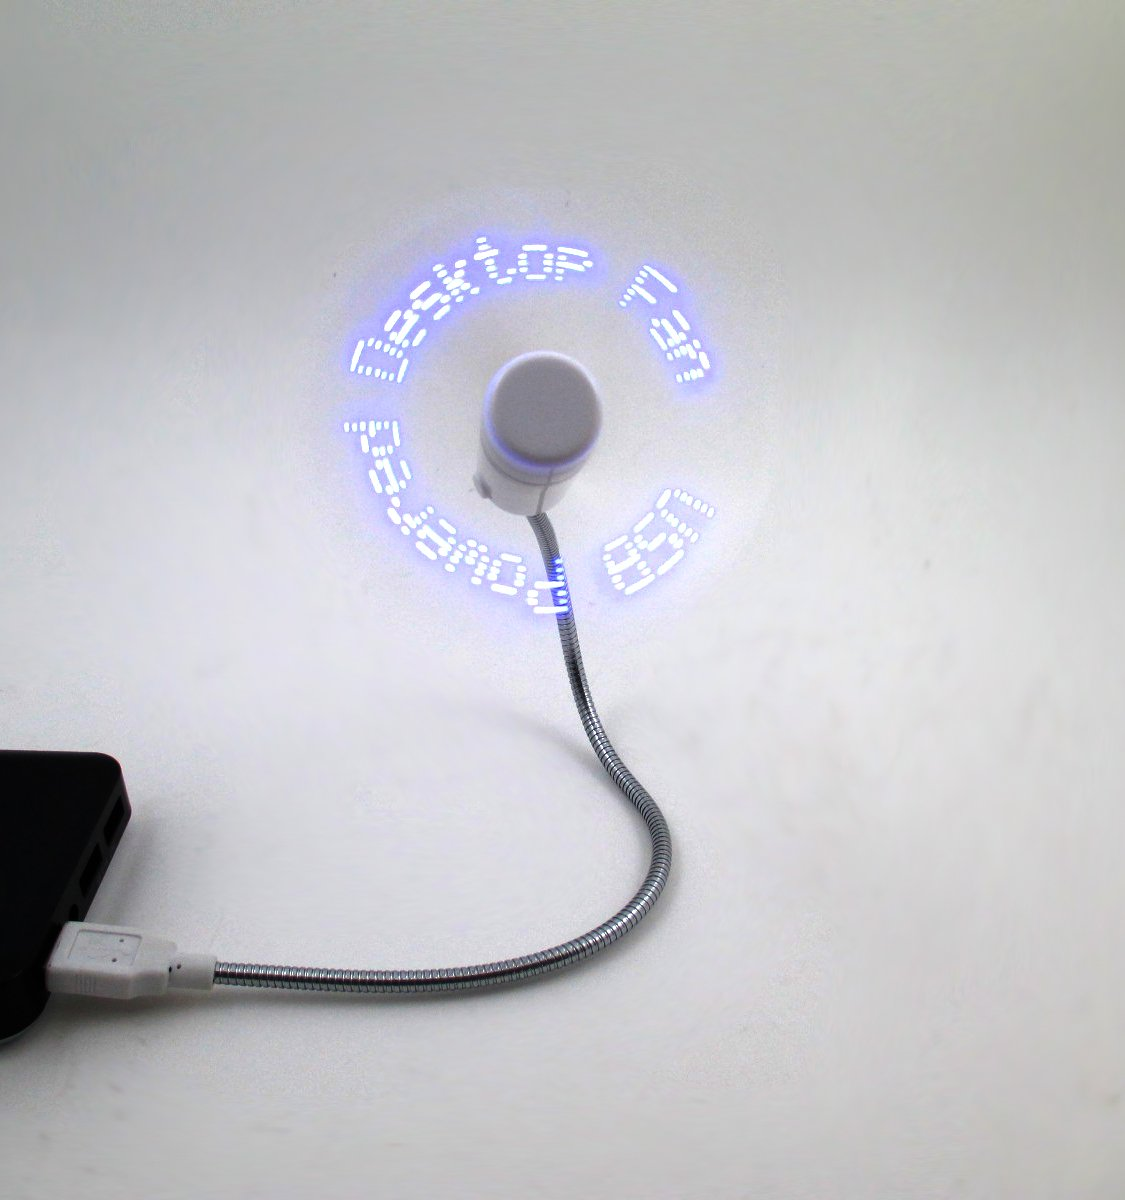 BSBL USB Powered Desktop LED Programmable Message Fan(China (Mainland))